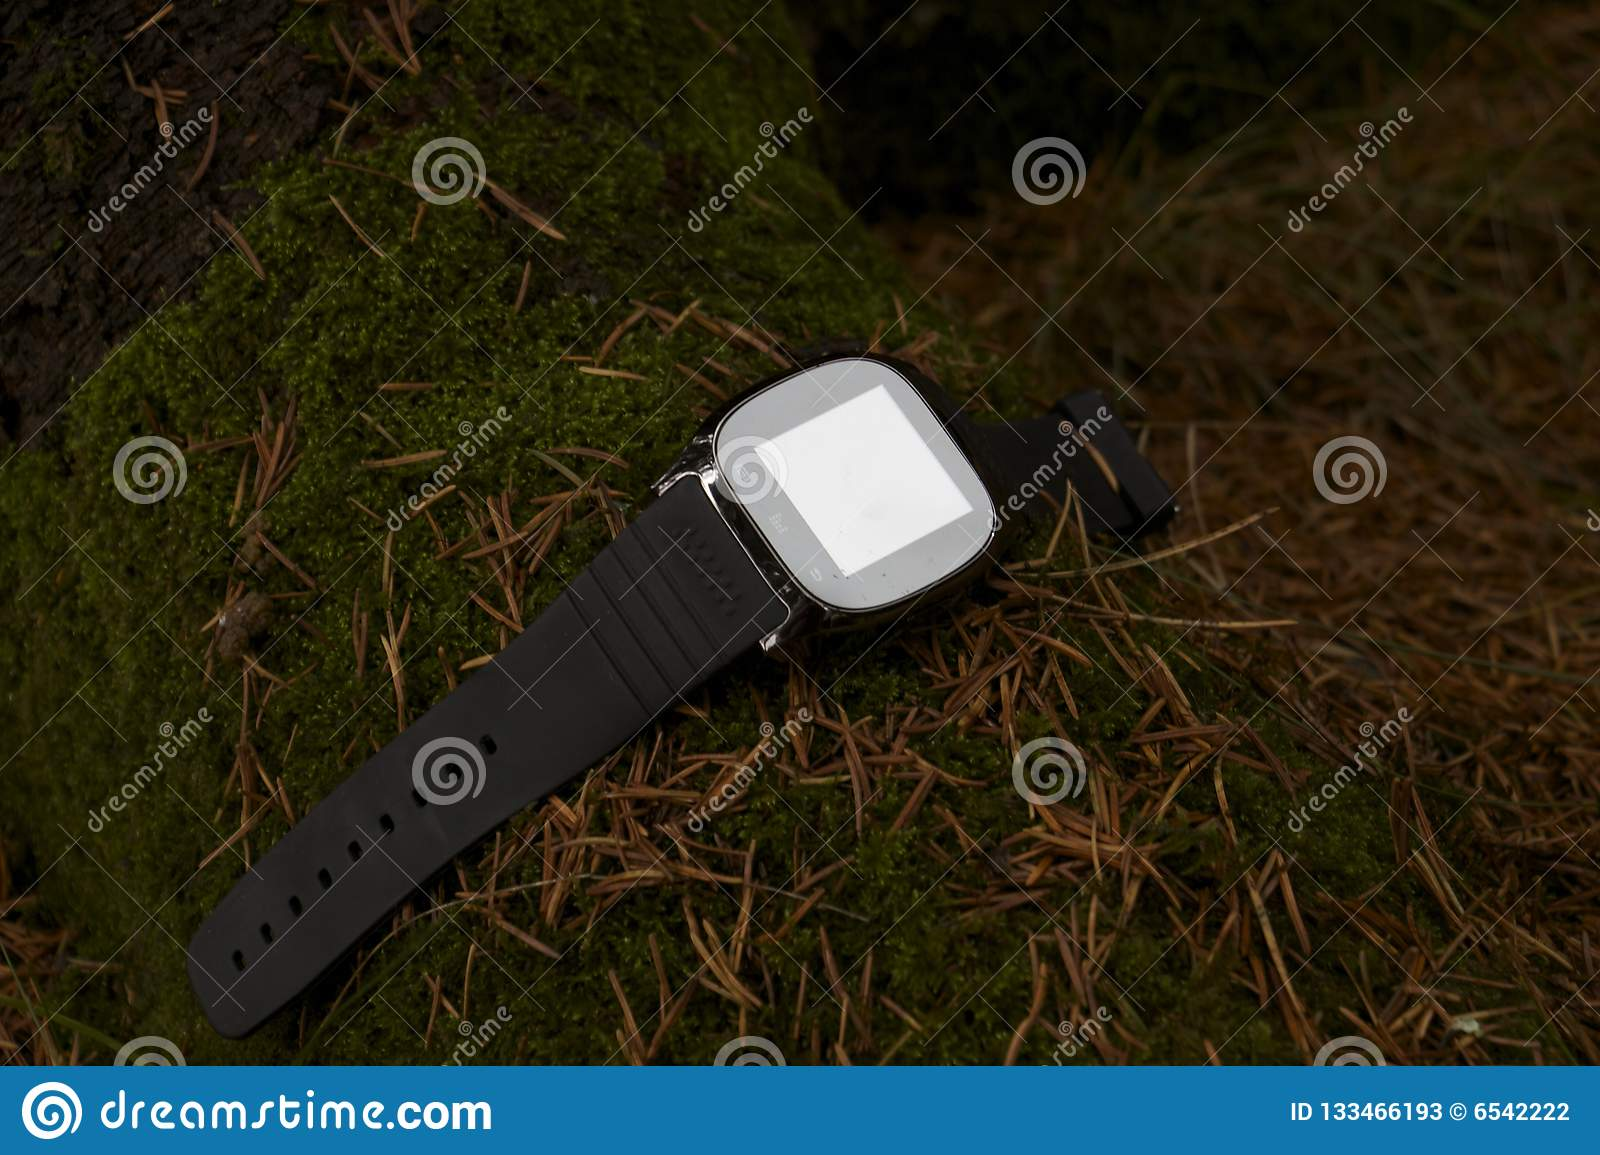 Electronic clock outdoors, gadgets on earth